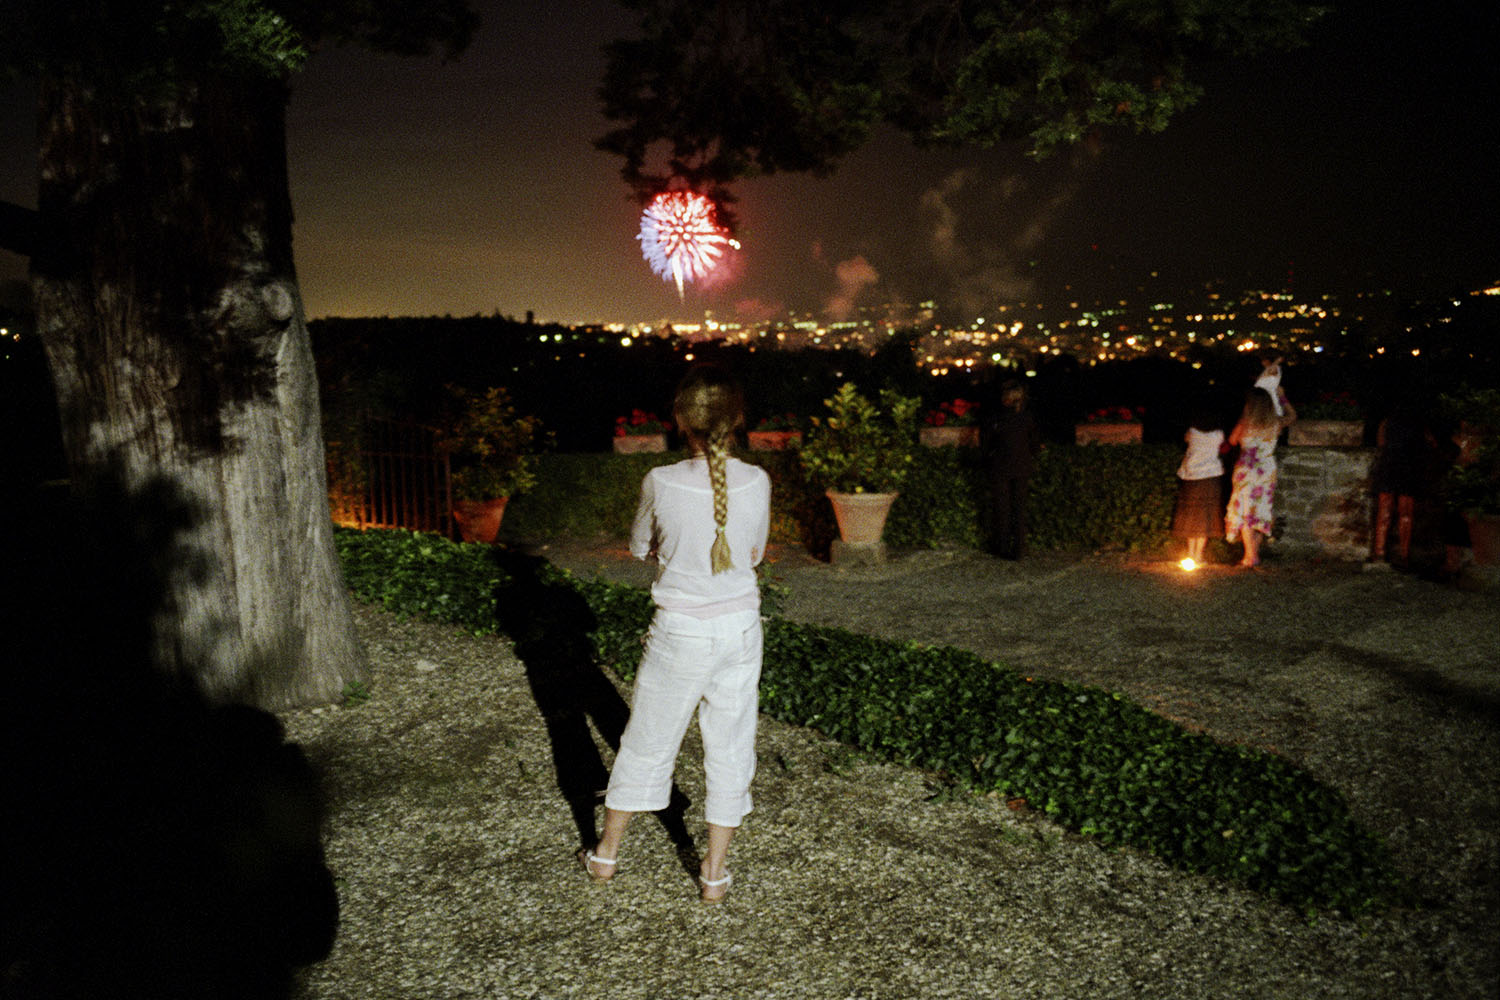 Looking at fireworks over Florence at Villa Poggio agli Ulivi.